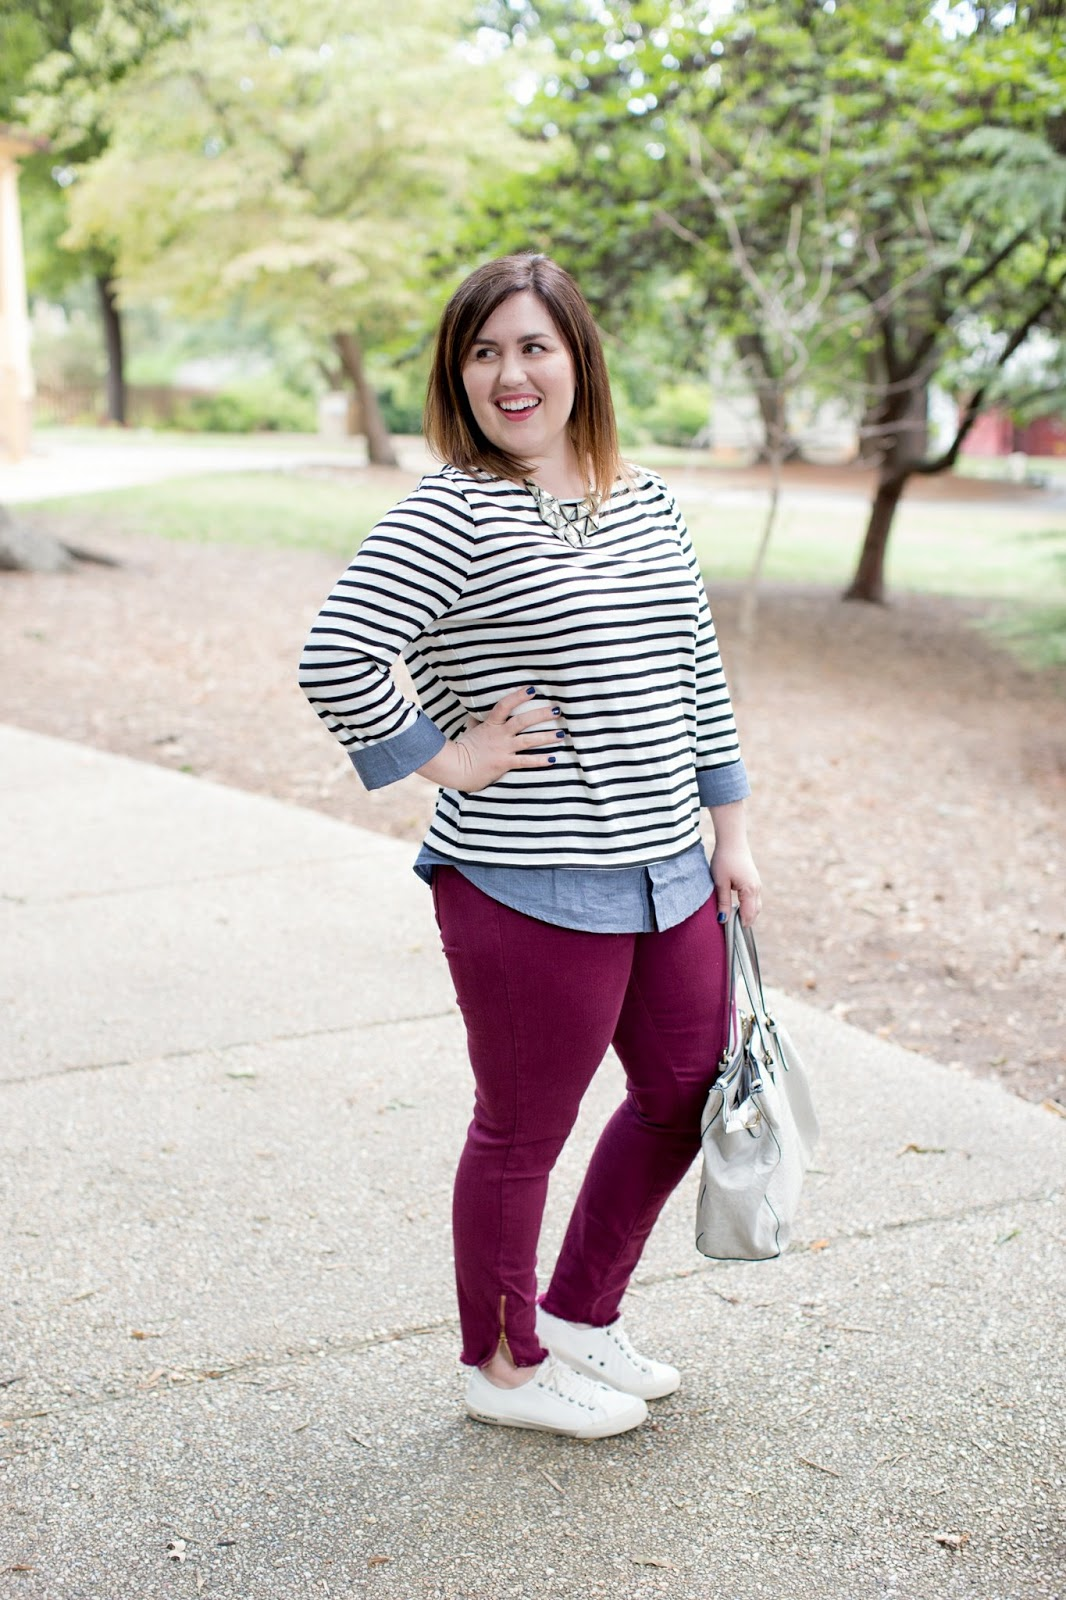 Popular North Carolina style blogger Rebecca Lately shares her favorite items from Stitch Fix. Clear here to see what she loves now!